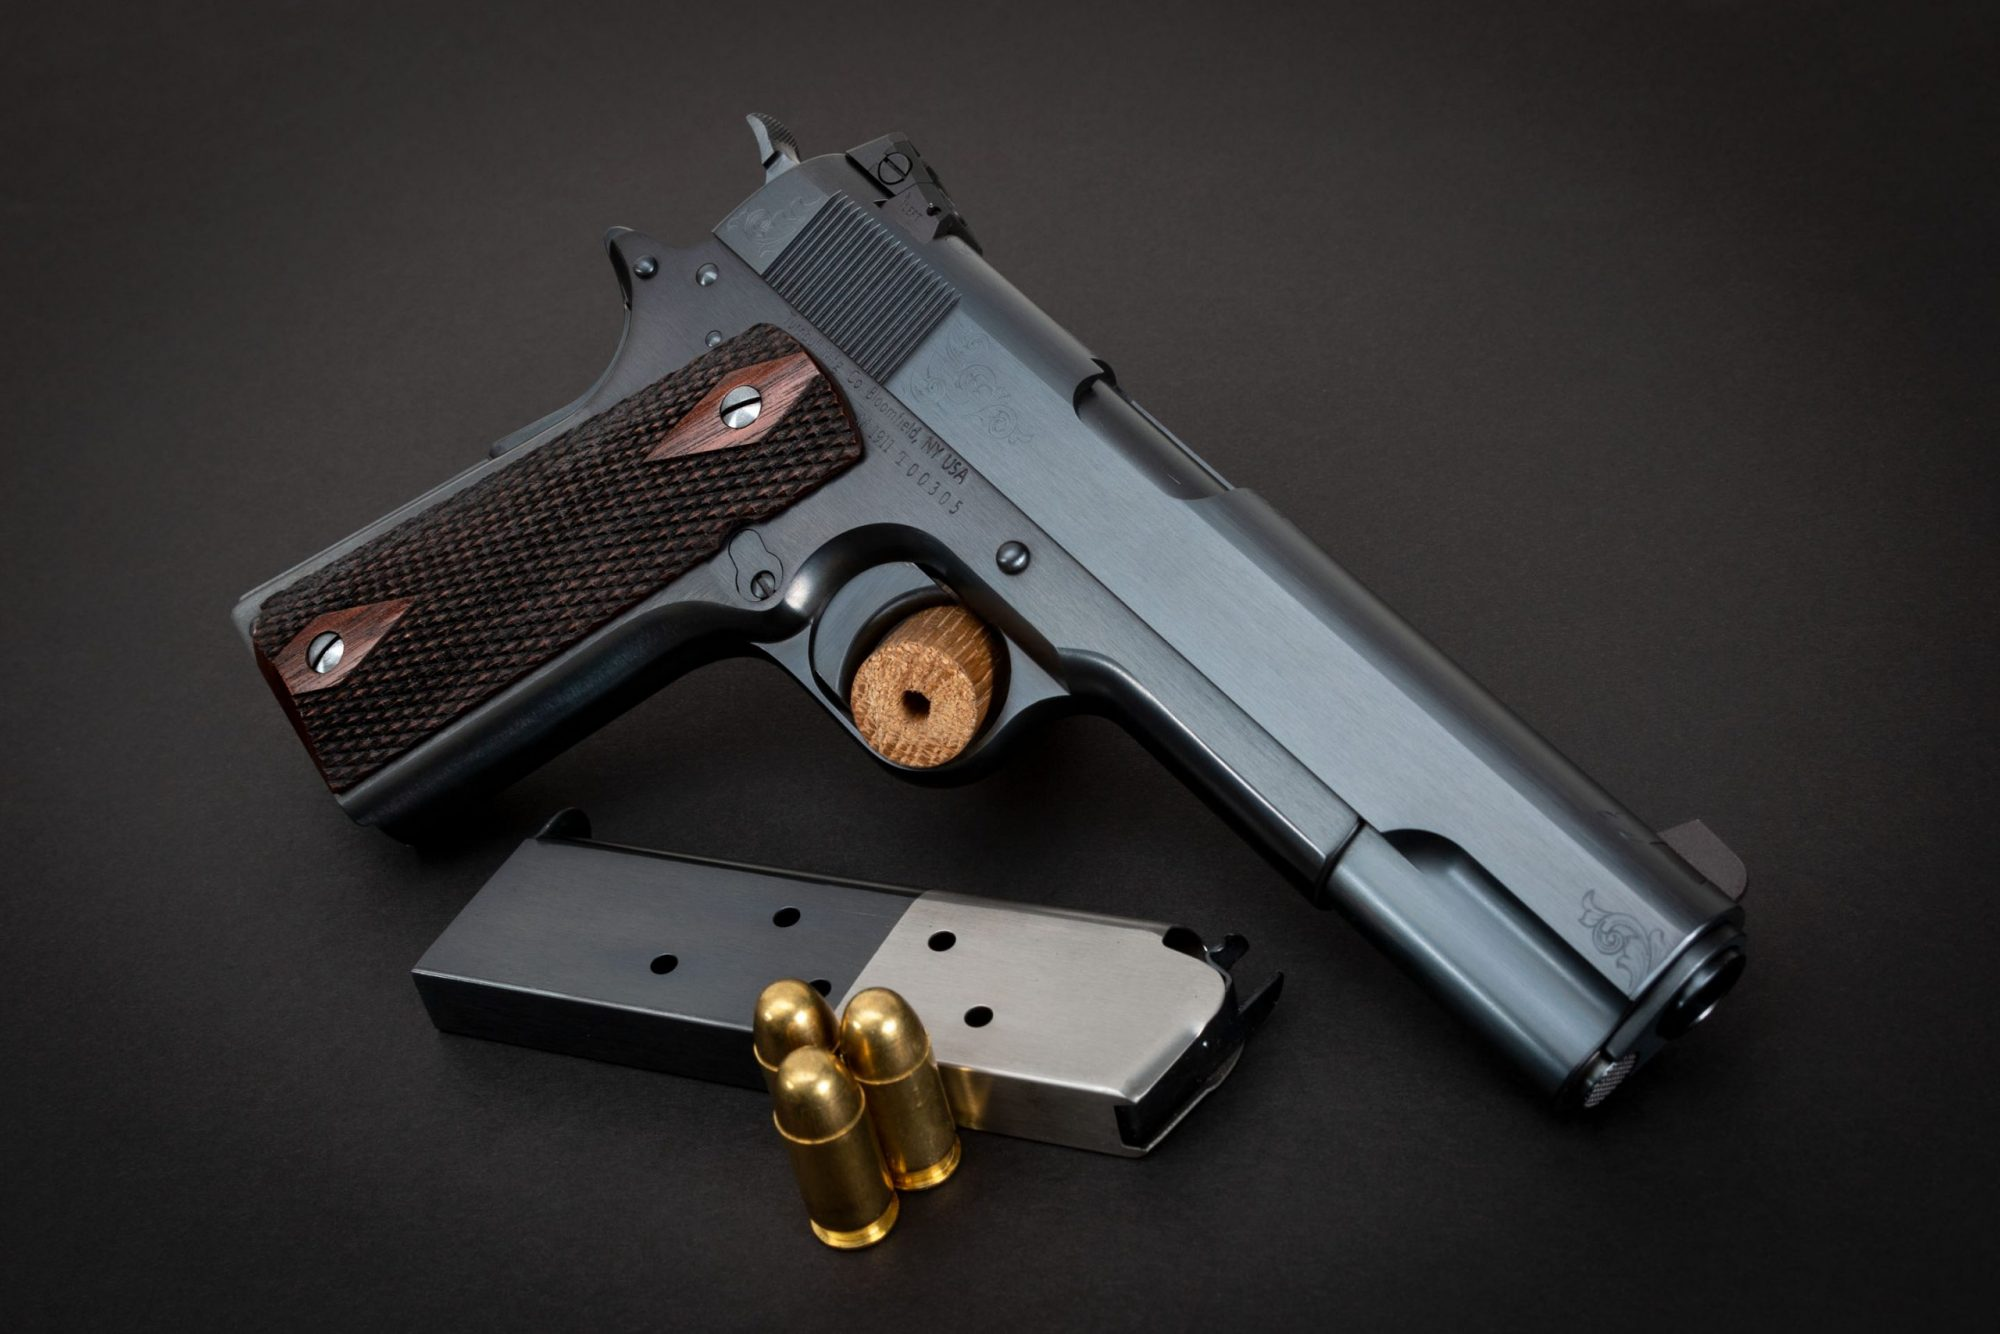 Photo of an engraved Turnbull Model 1911 Limited Edition, a WWI-era inspired 1911 built by Turnbull Restoration, who are the experts of classic Model 1911 restoration